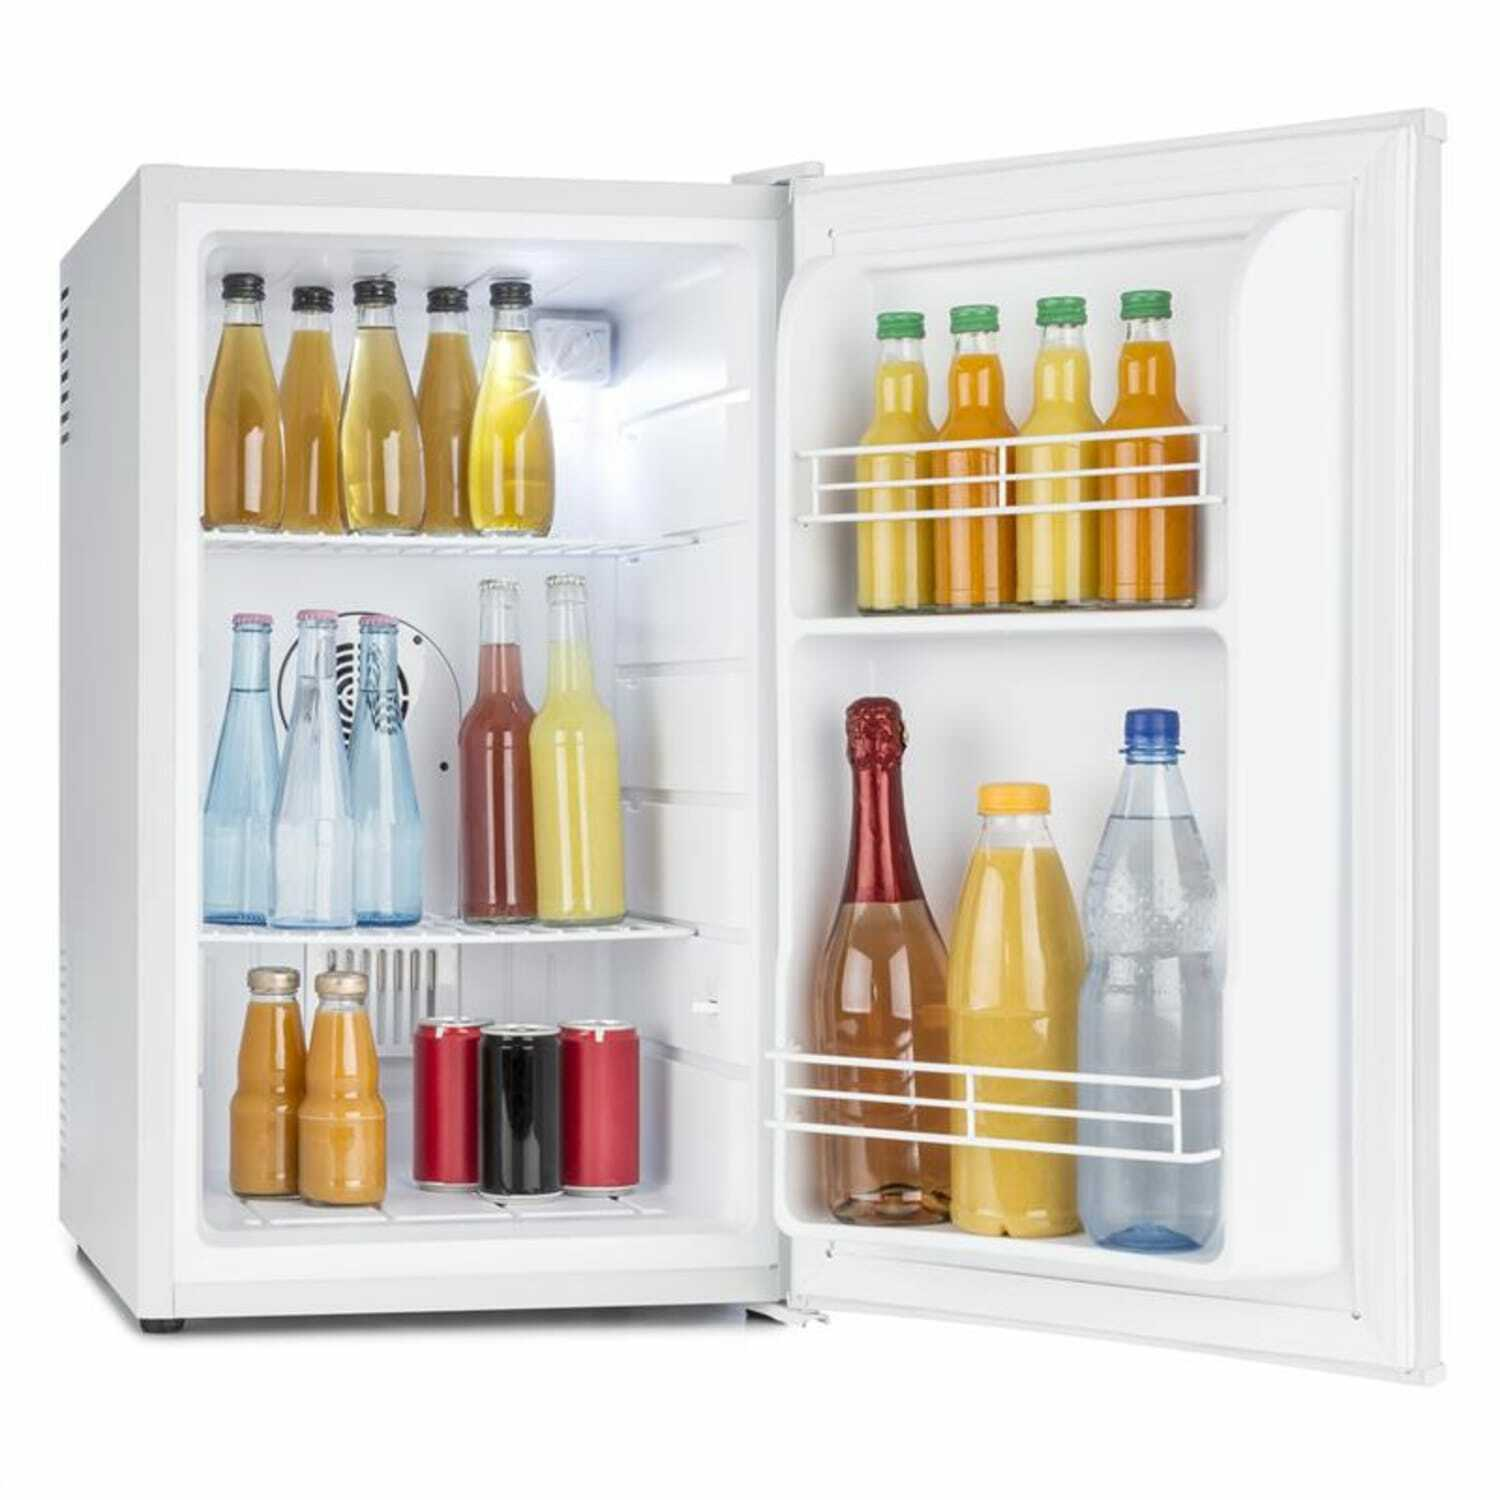 klarstein mini bar frigo 66l pro temperature reglable hotel cafe bar restaurant eur 219 99. Black Bedroom Furniture Sets. Home Design Ideas